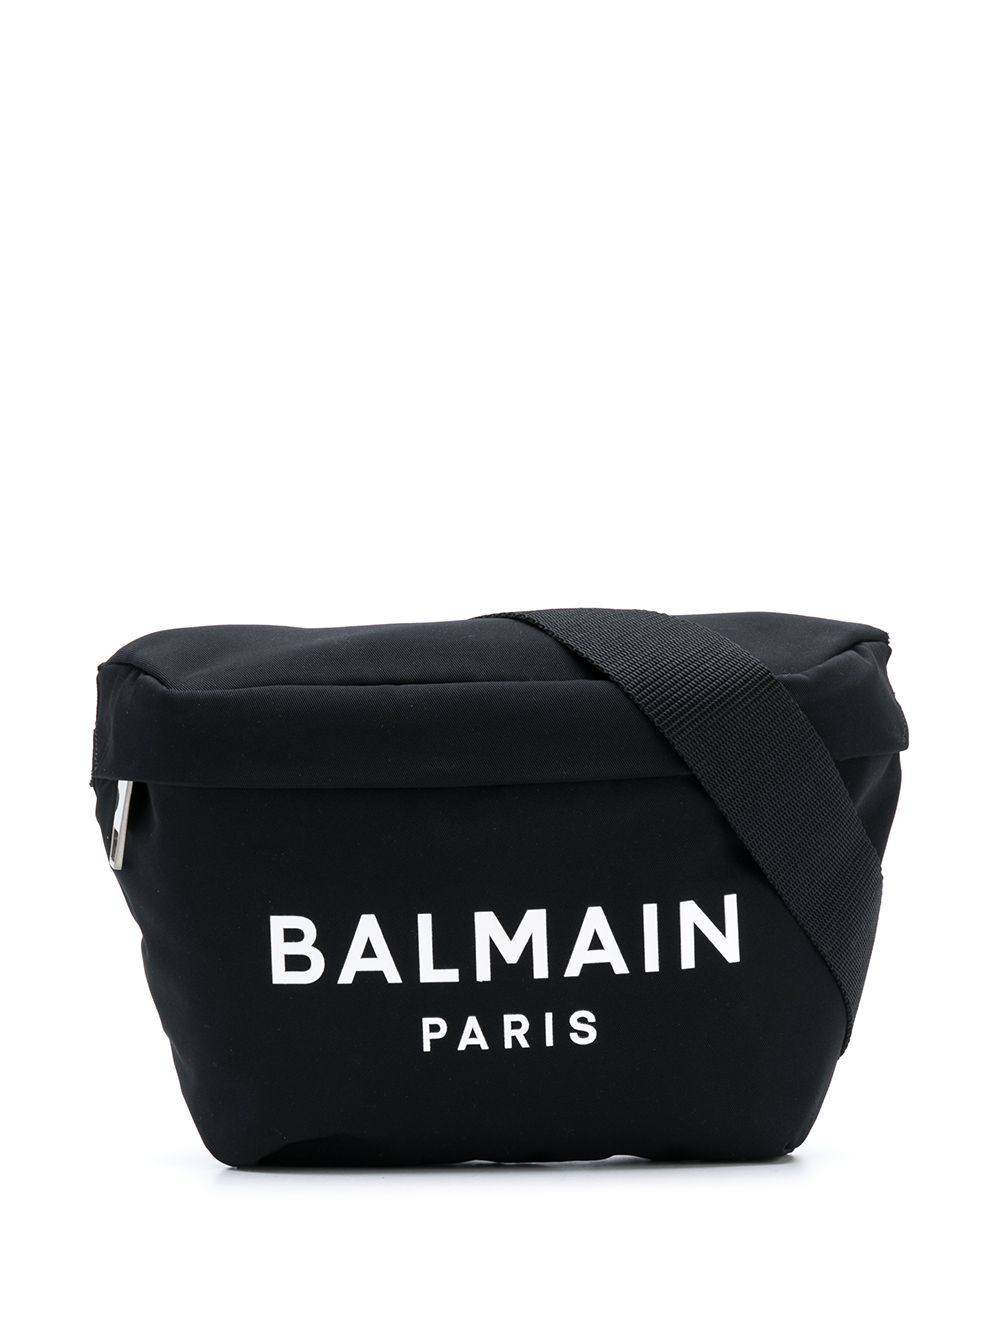 BALMAIN Logo Crossbody Bag Black/White